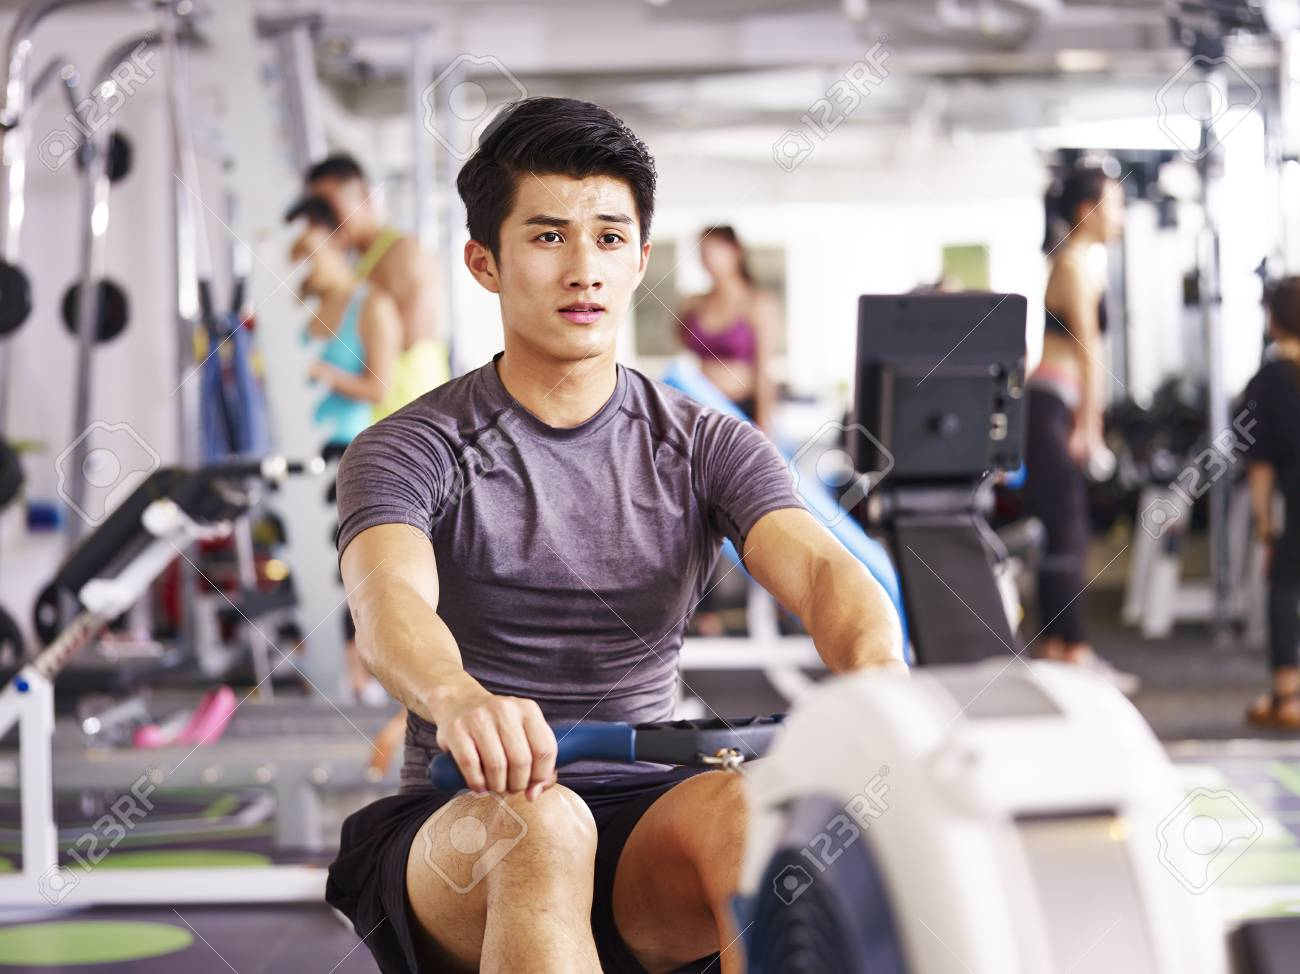 young asian adult man working out in gym using rowing machine. - 87617758